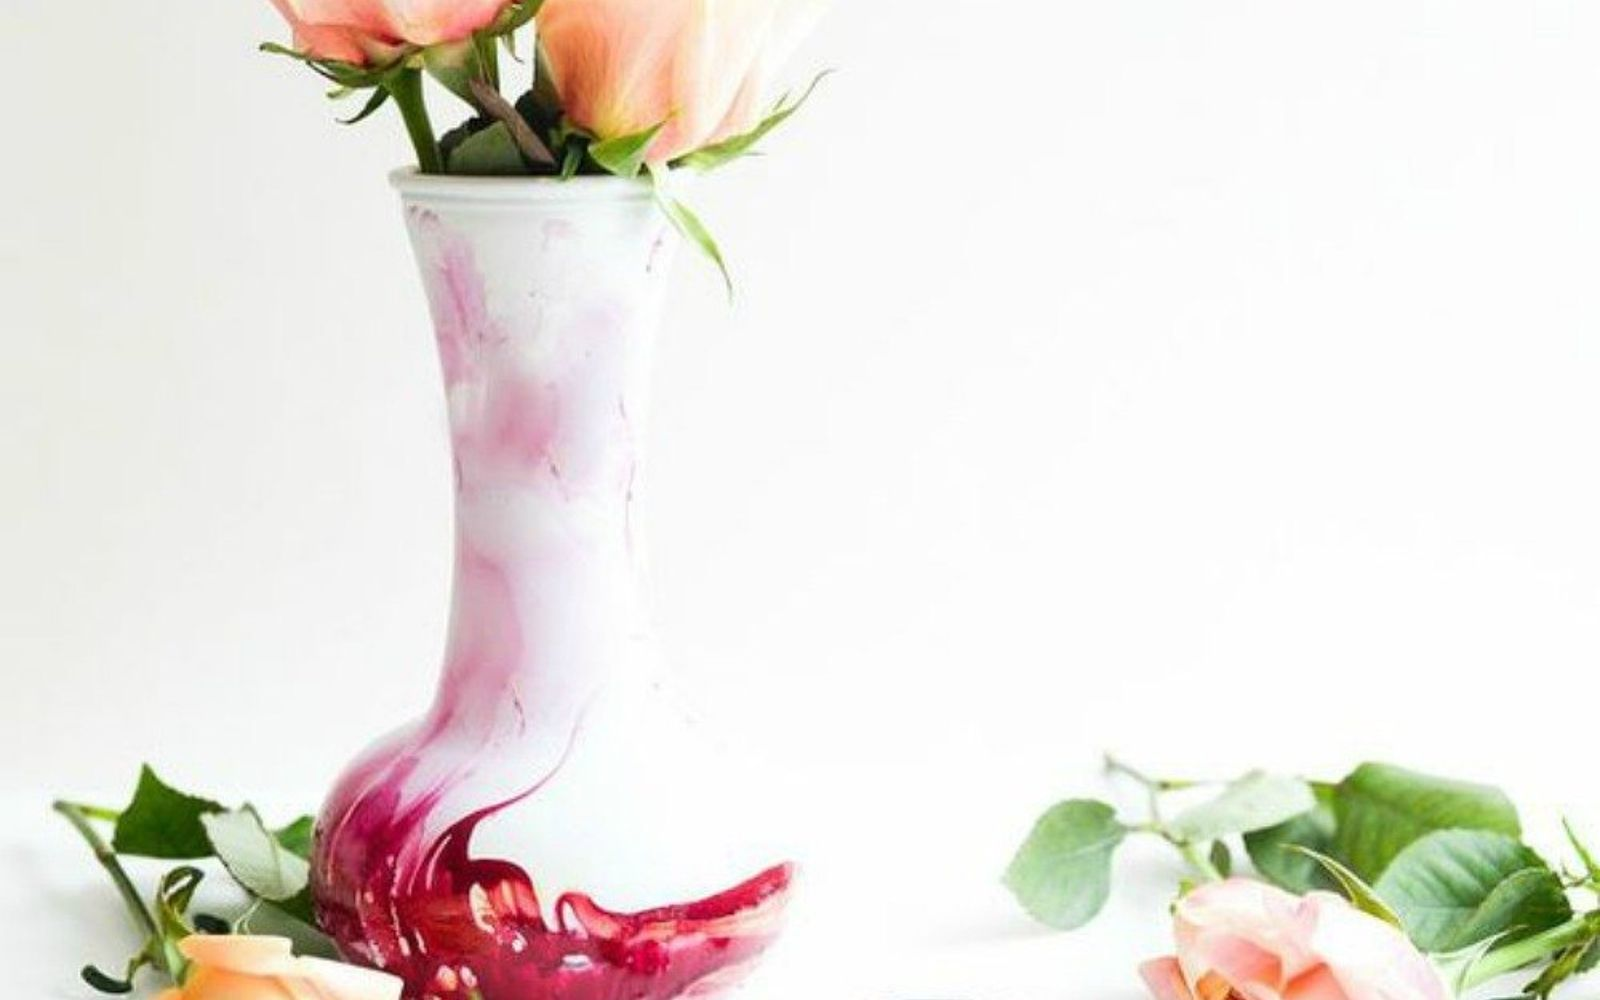 s decorate your living room for under 10 with these 15 ideas, Marble a vase to look designer